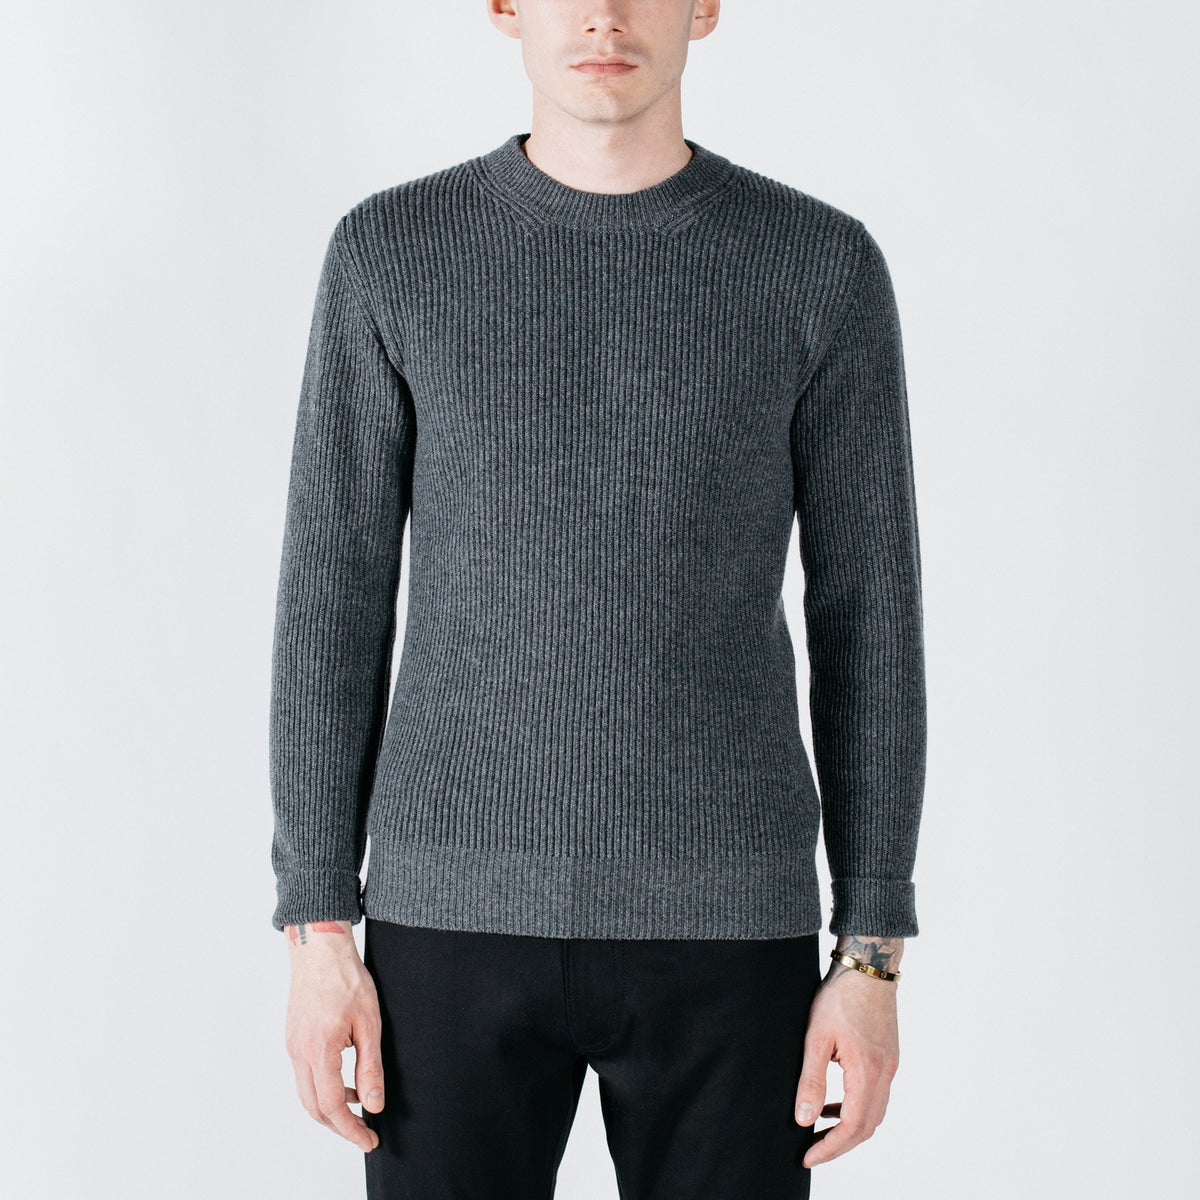 Smuggler Cashmere Crew Sweater - Darby Gray